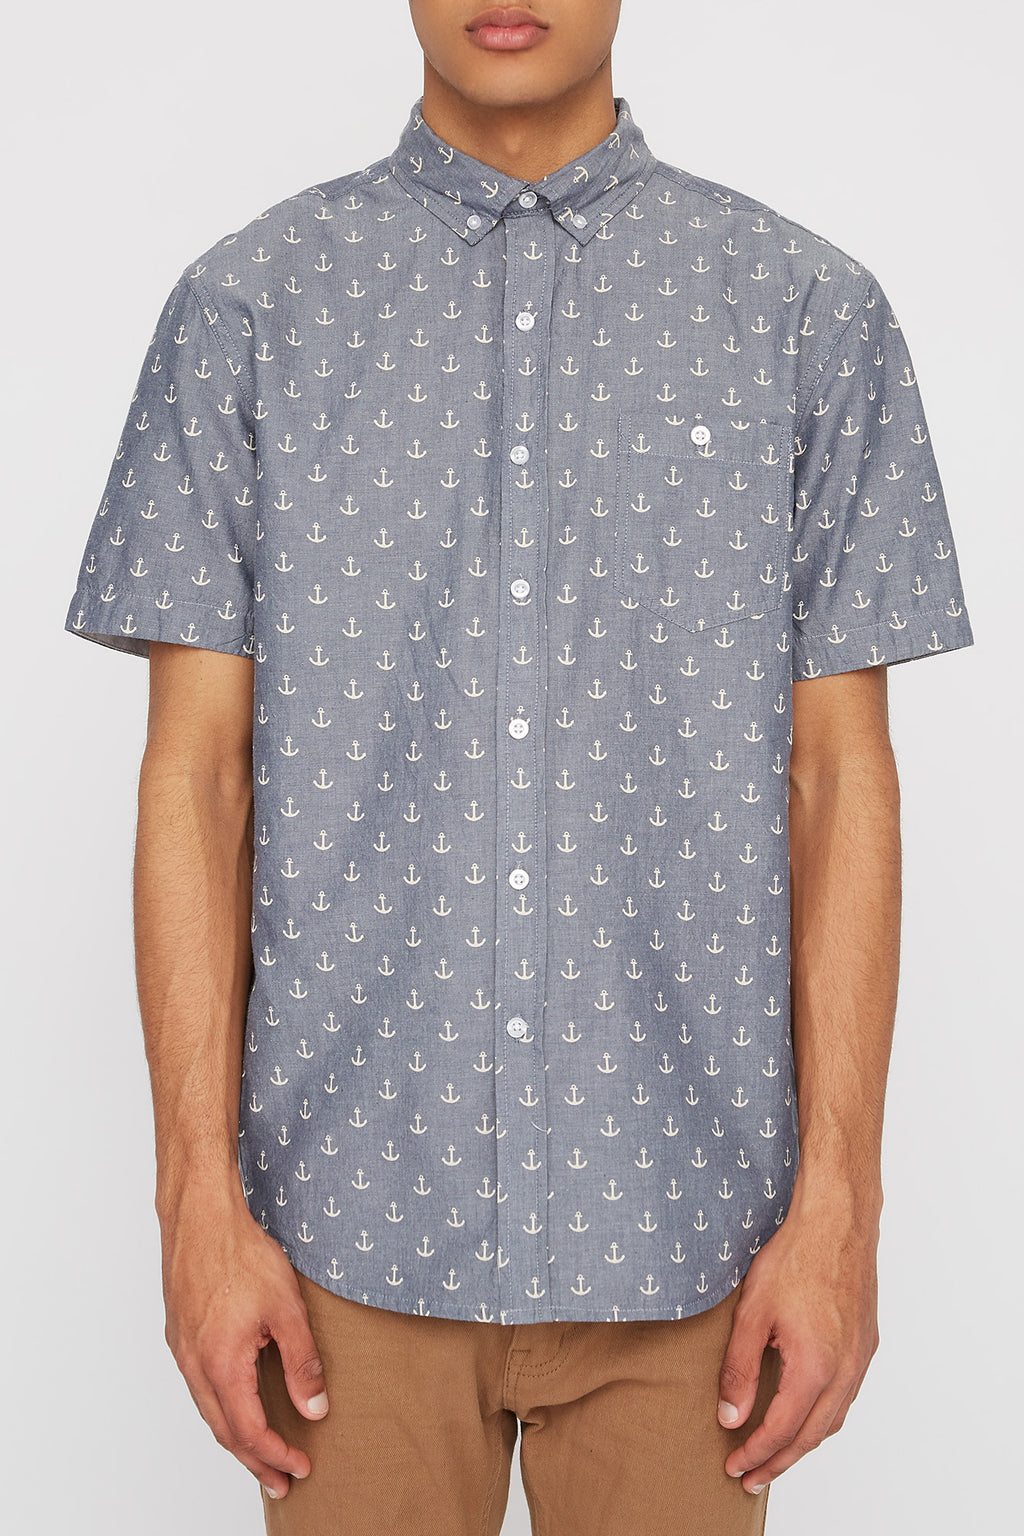 West49 Mens Anchor Button Up Shirt